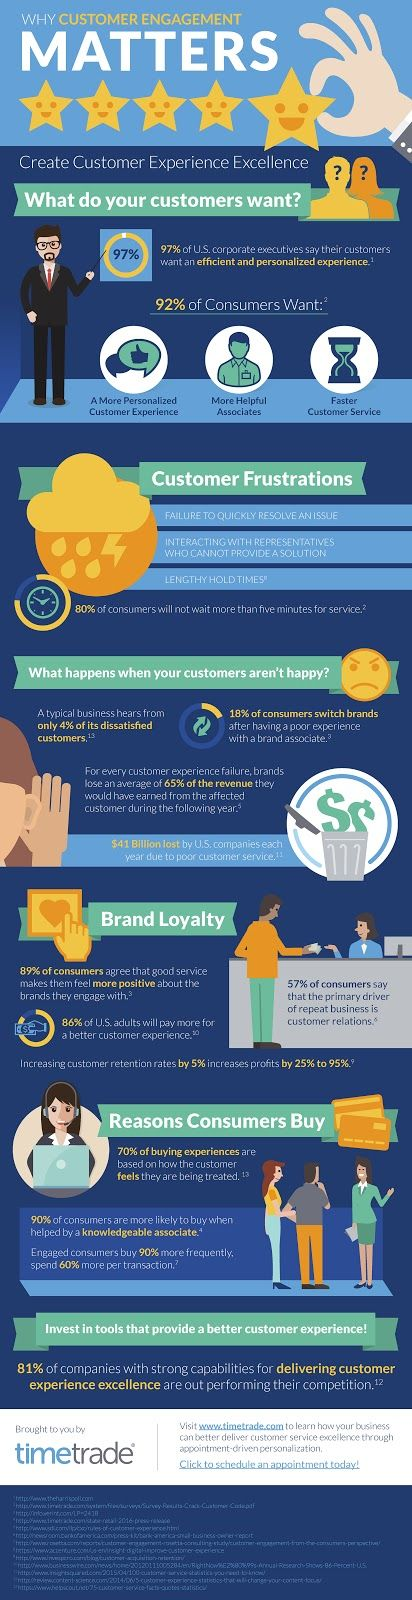 Why Customer Engagement Matters - Do you fancy an infographic? There are a lot of them online, but if you want your own please visit http://linfografico.com/en/prices/ Online girano molte infografiche, se ne vuoi realizzare una tutta tua visita http://www.linfografico.com/prezzi/